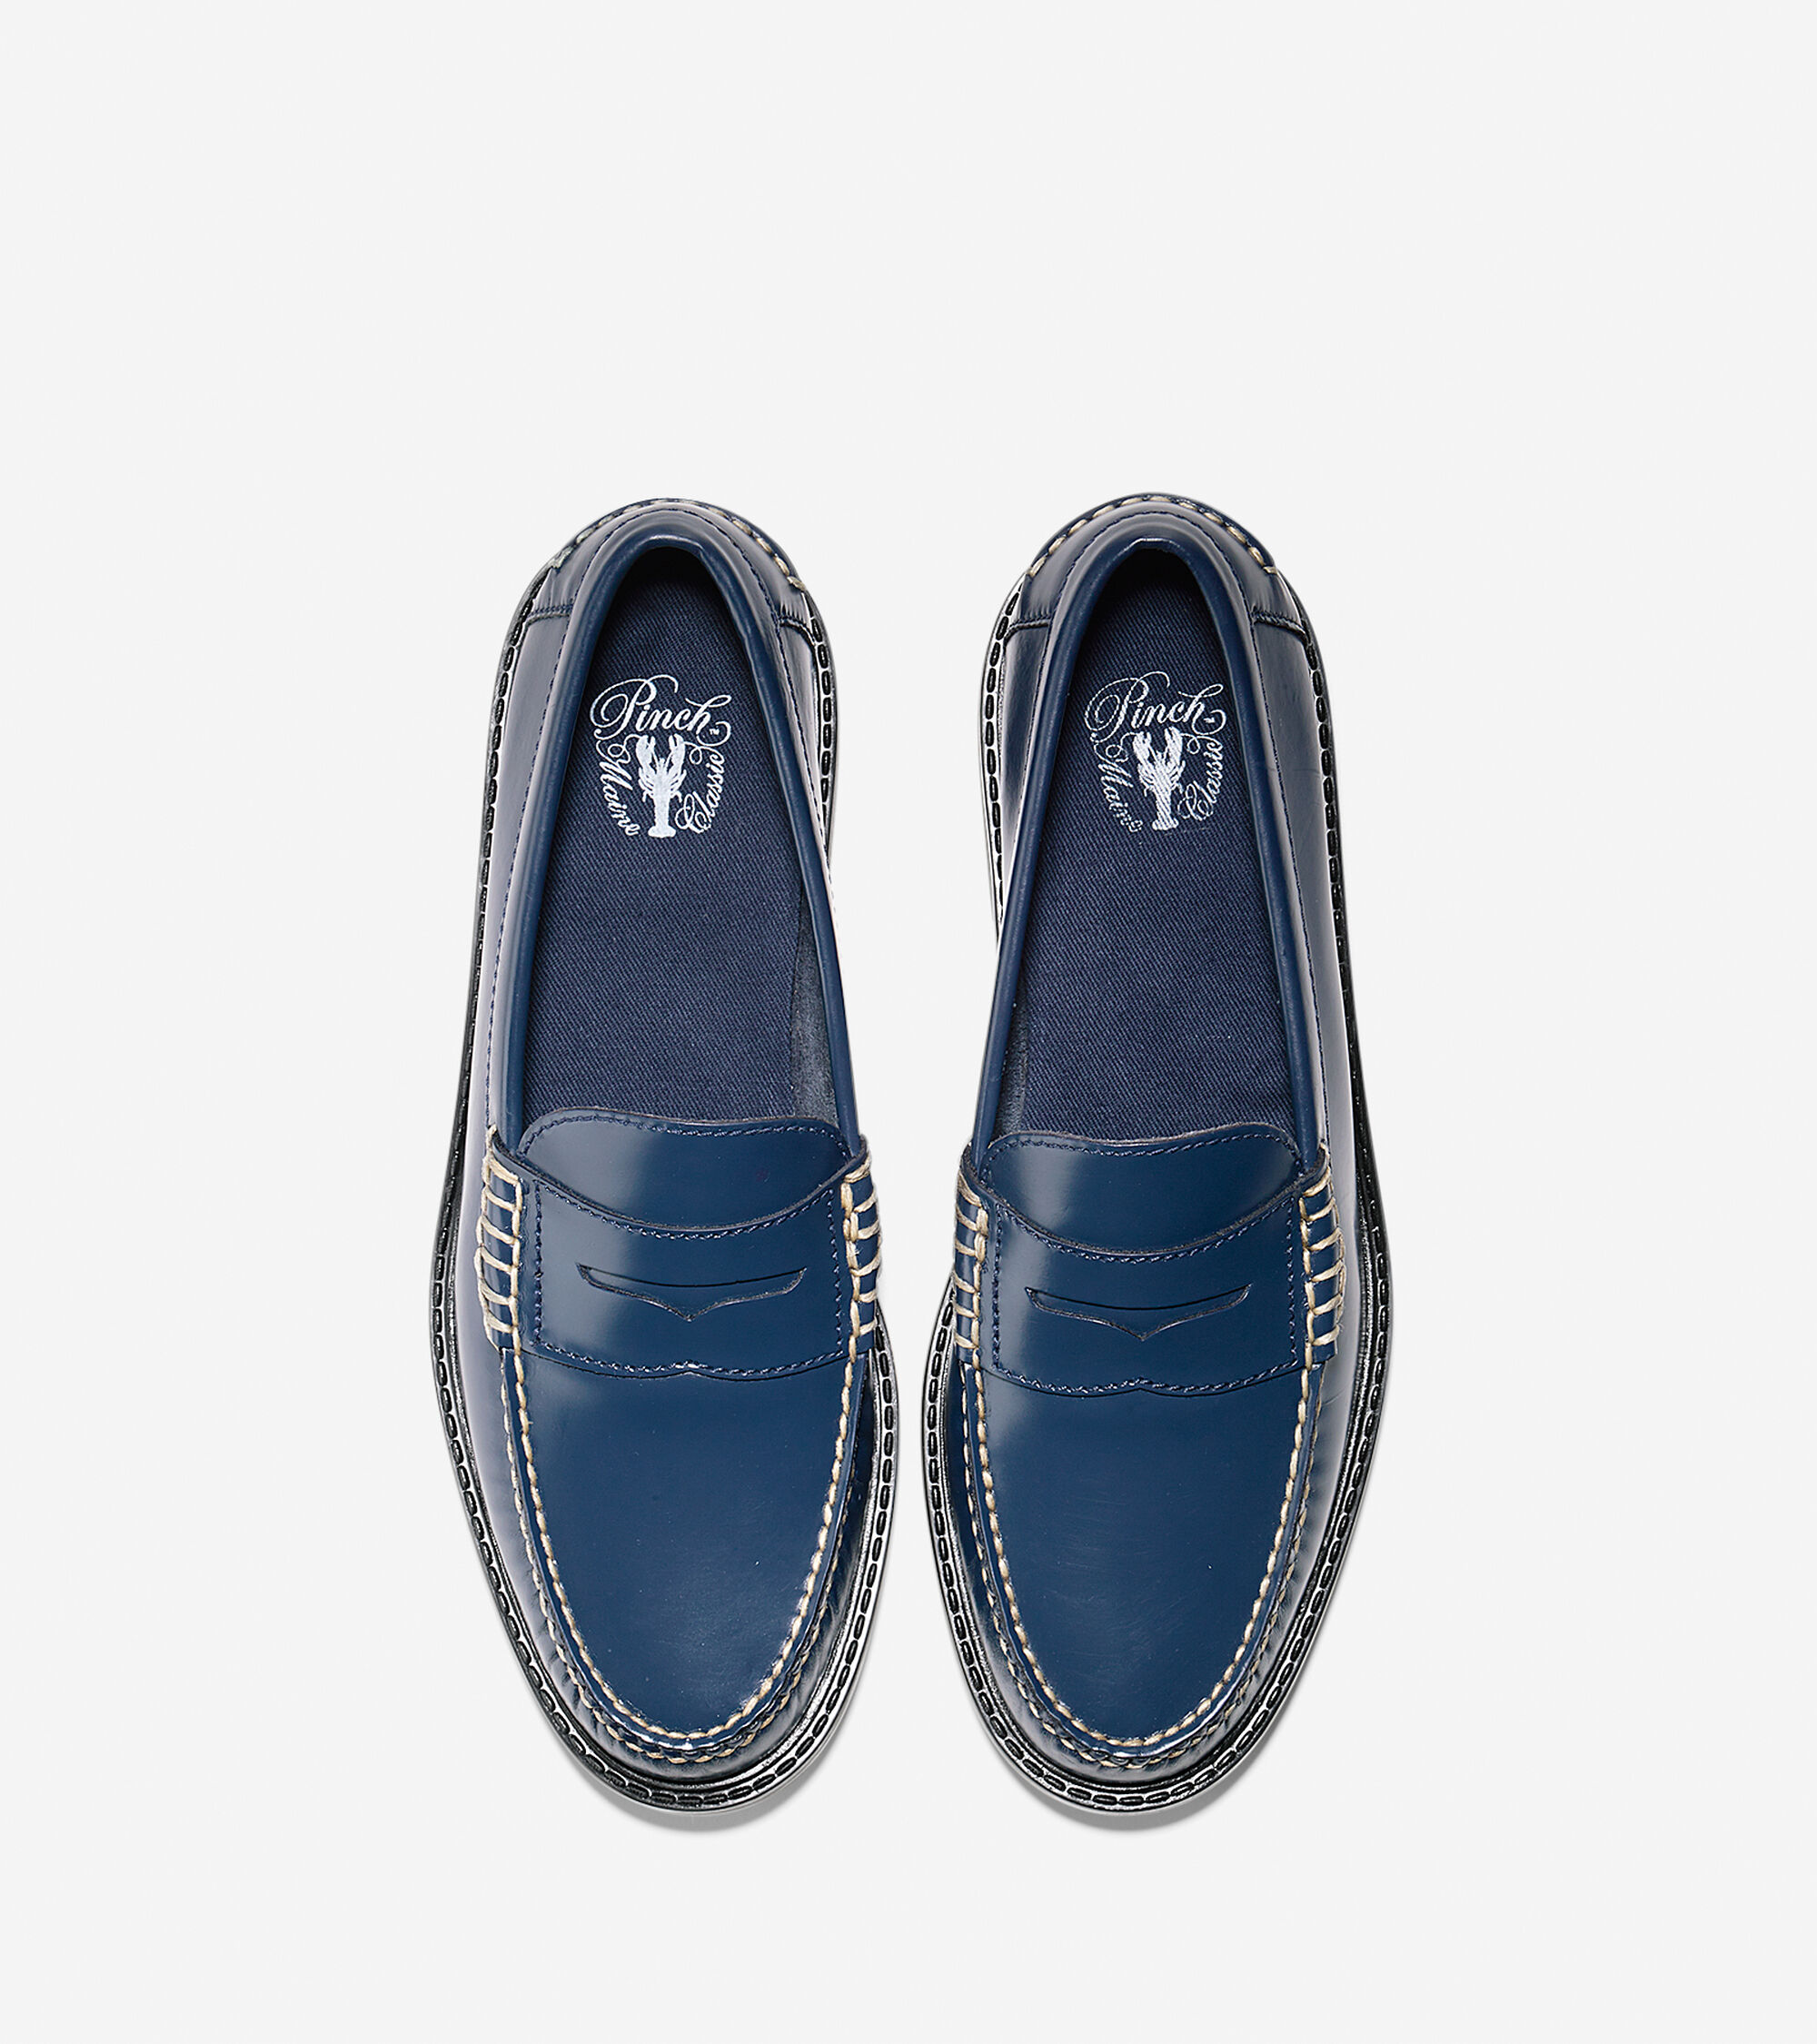 64f3eb37f09 Mens Pinch Campus Penny Loafers in Blazer Blue